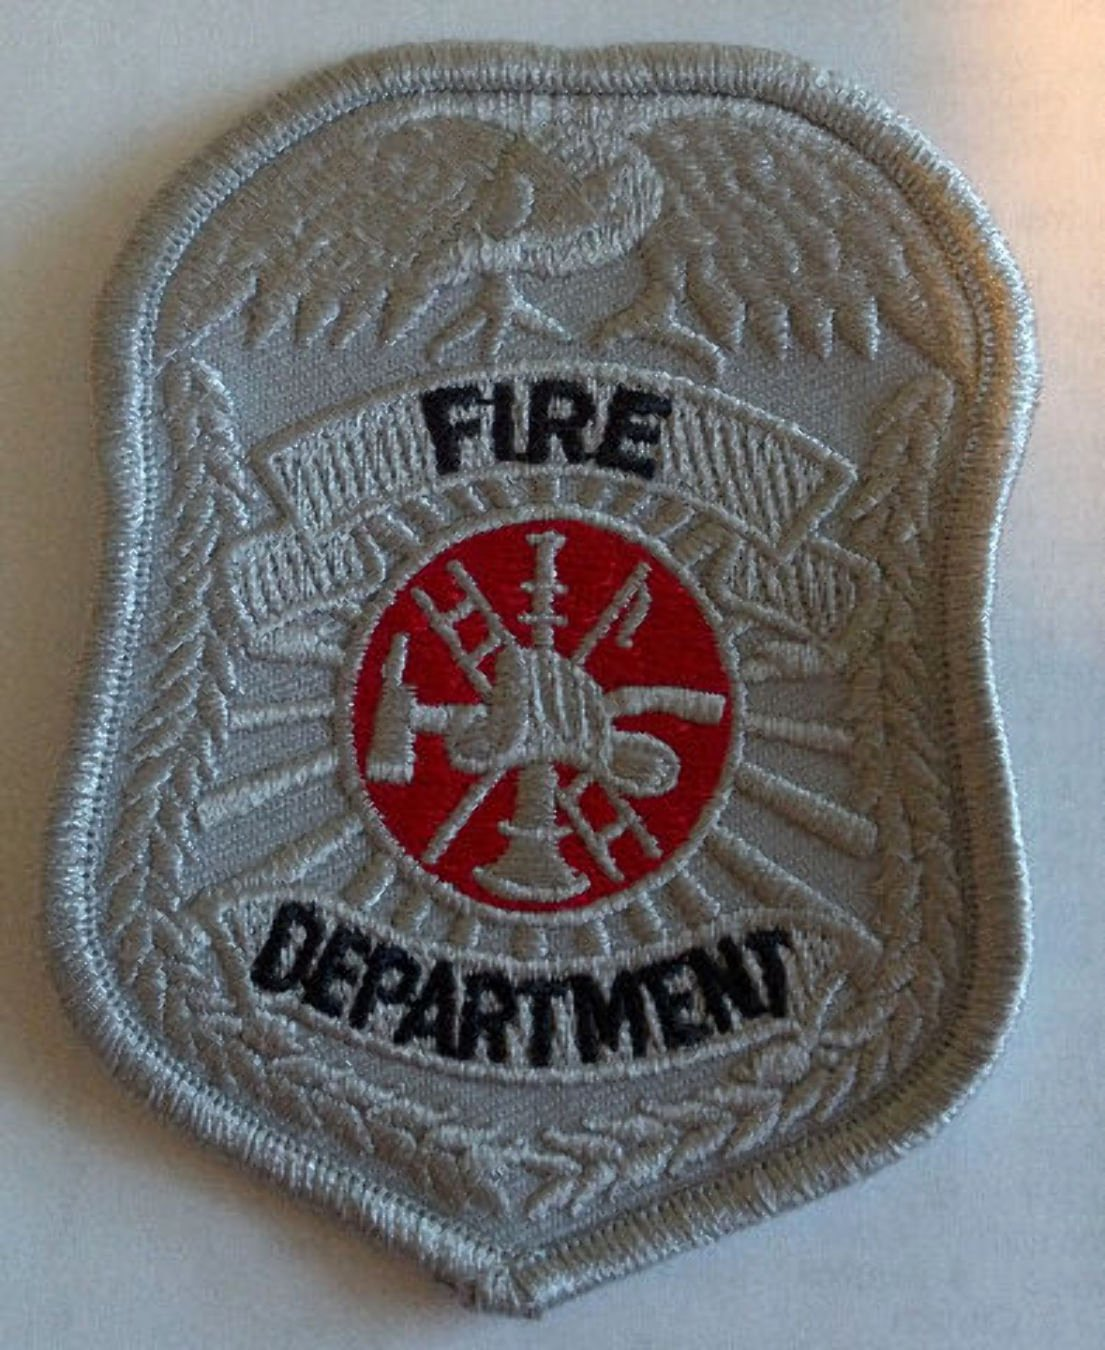 Fire Department Fd Firefighter Fireman Uniform Shirt